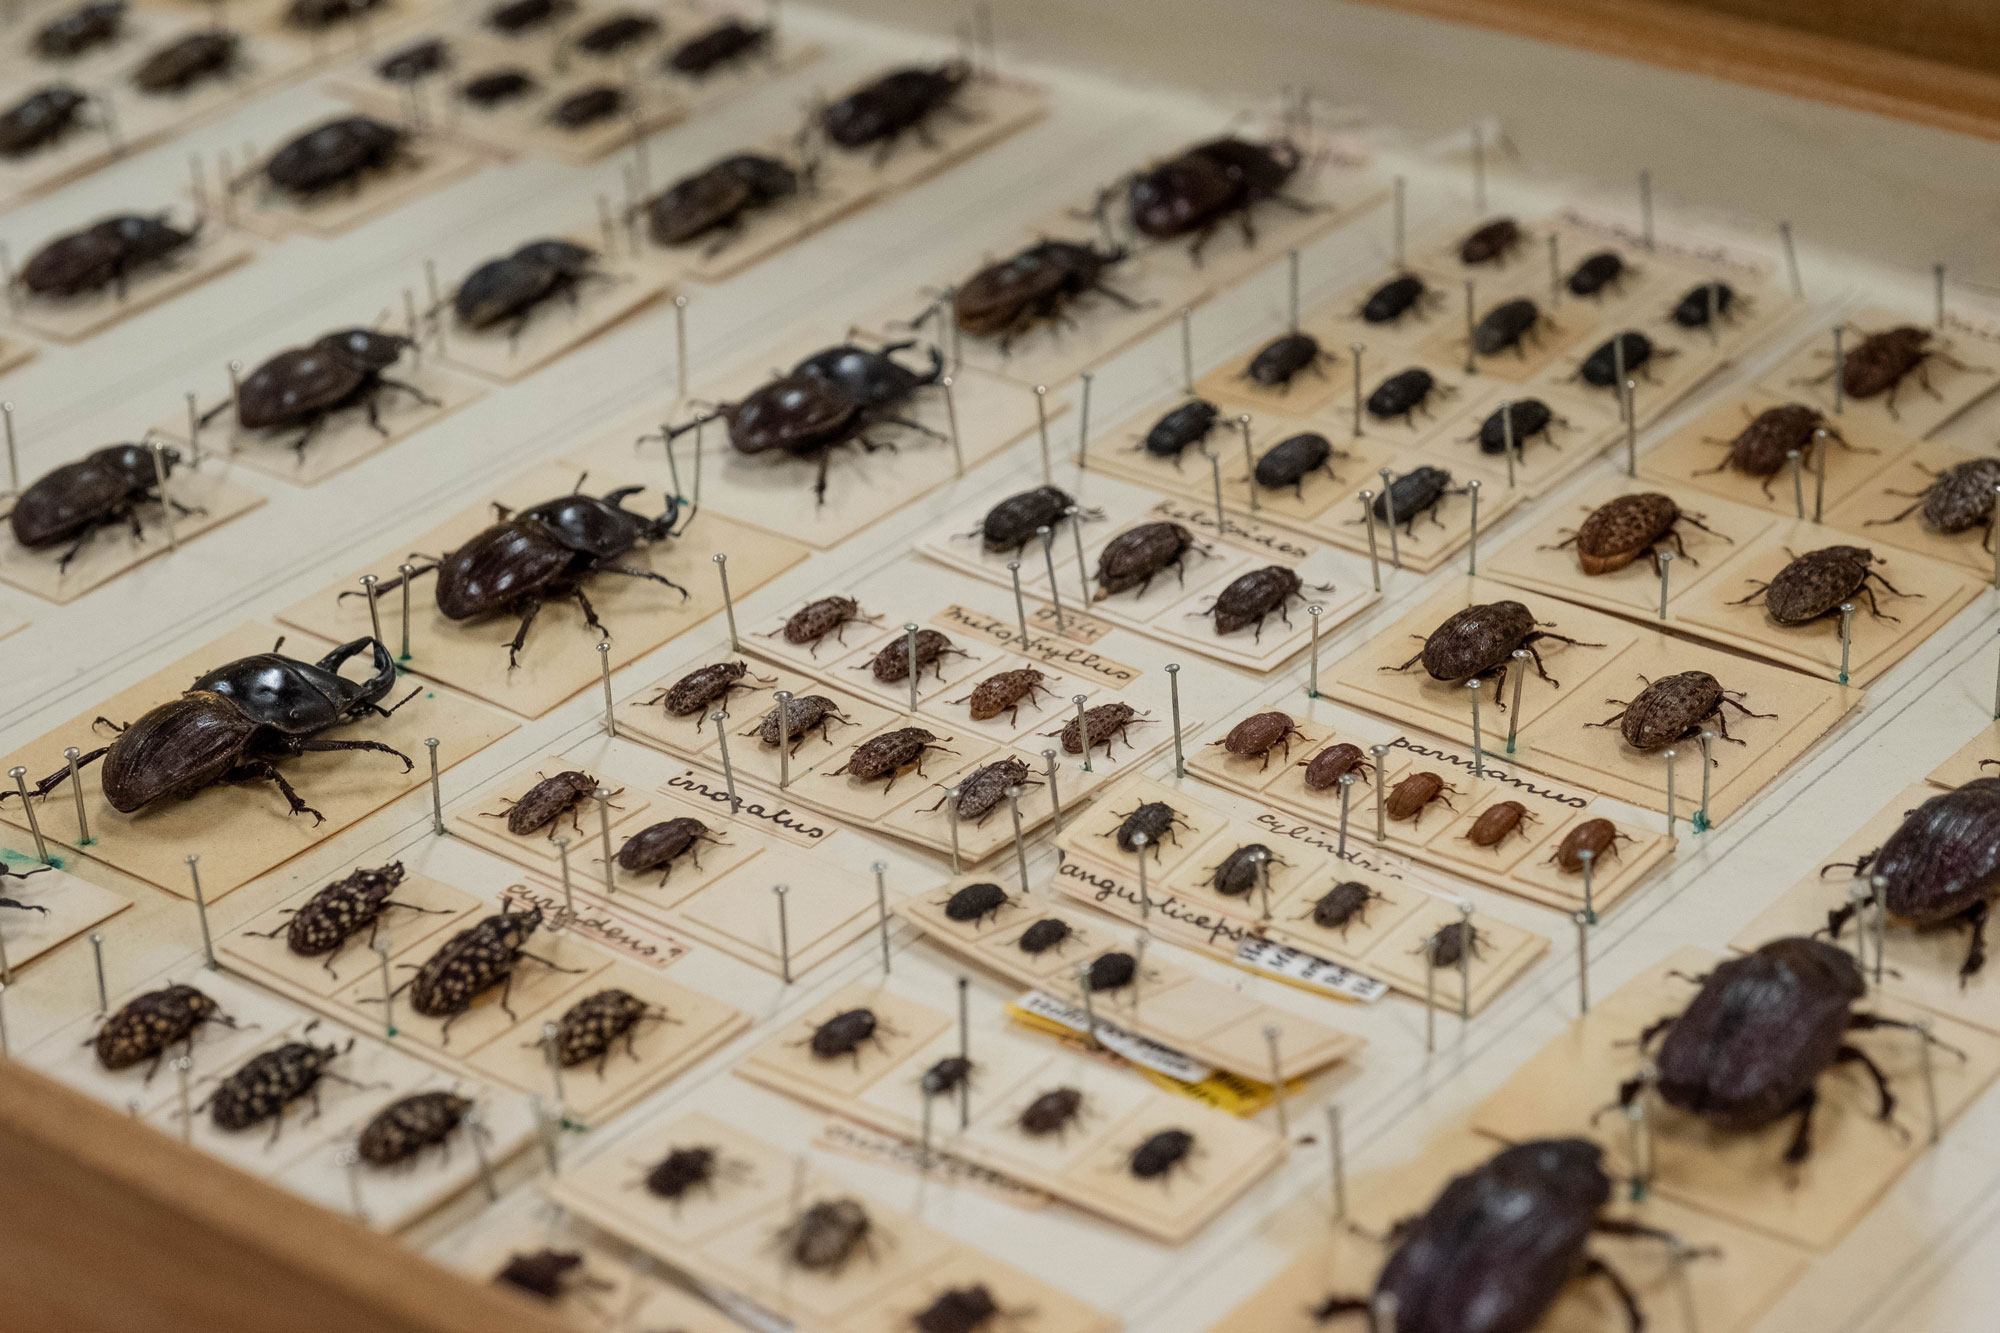 A selection of mounted beetles